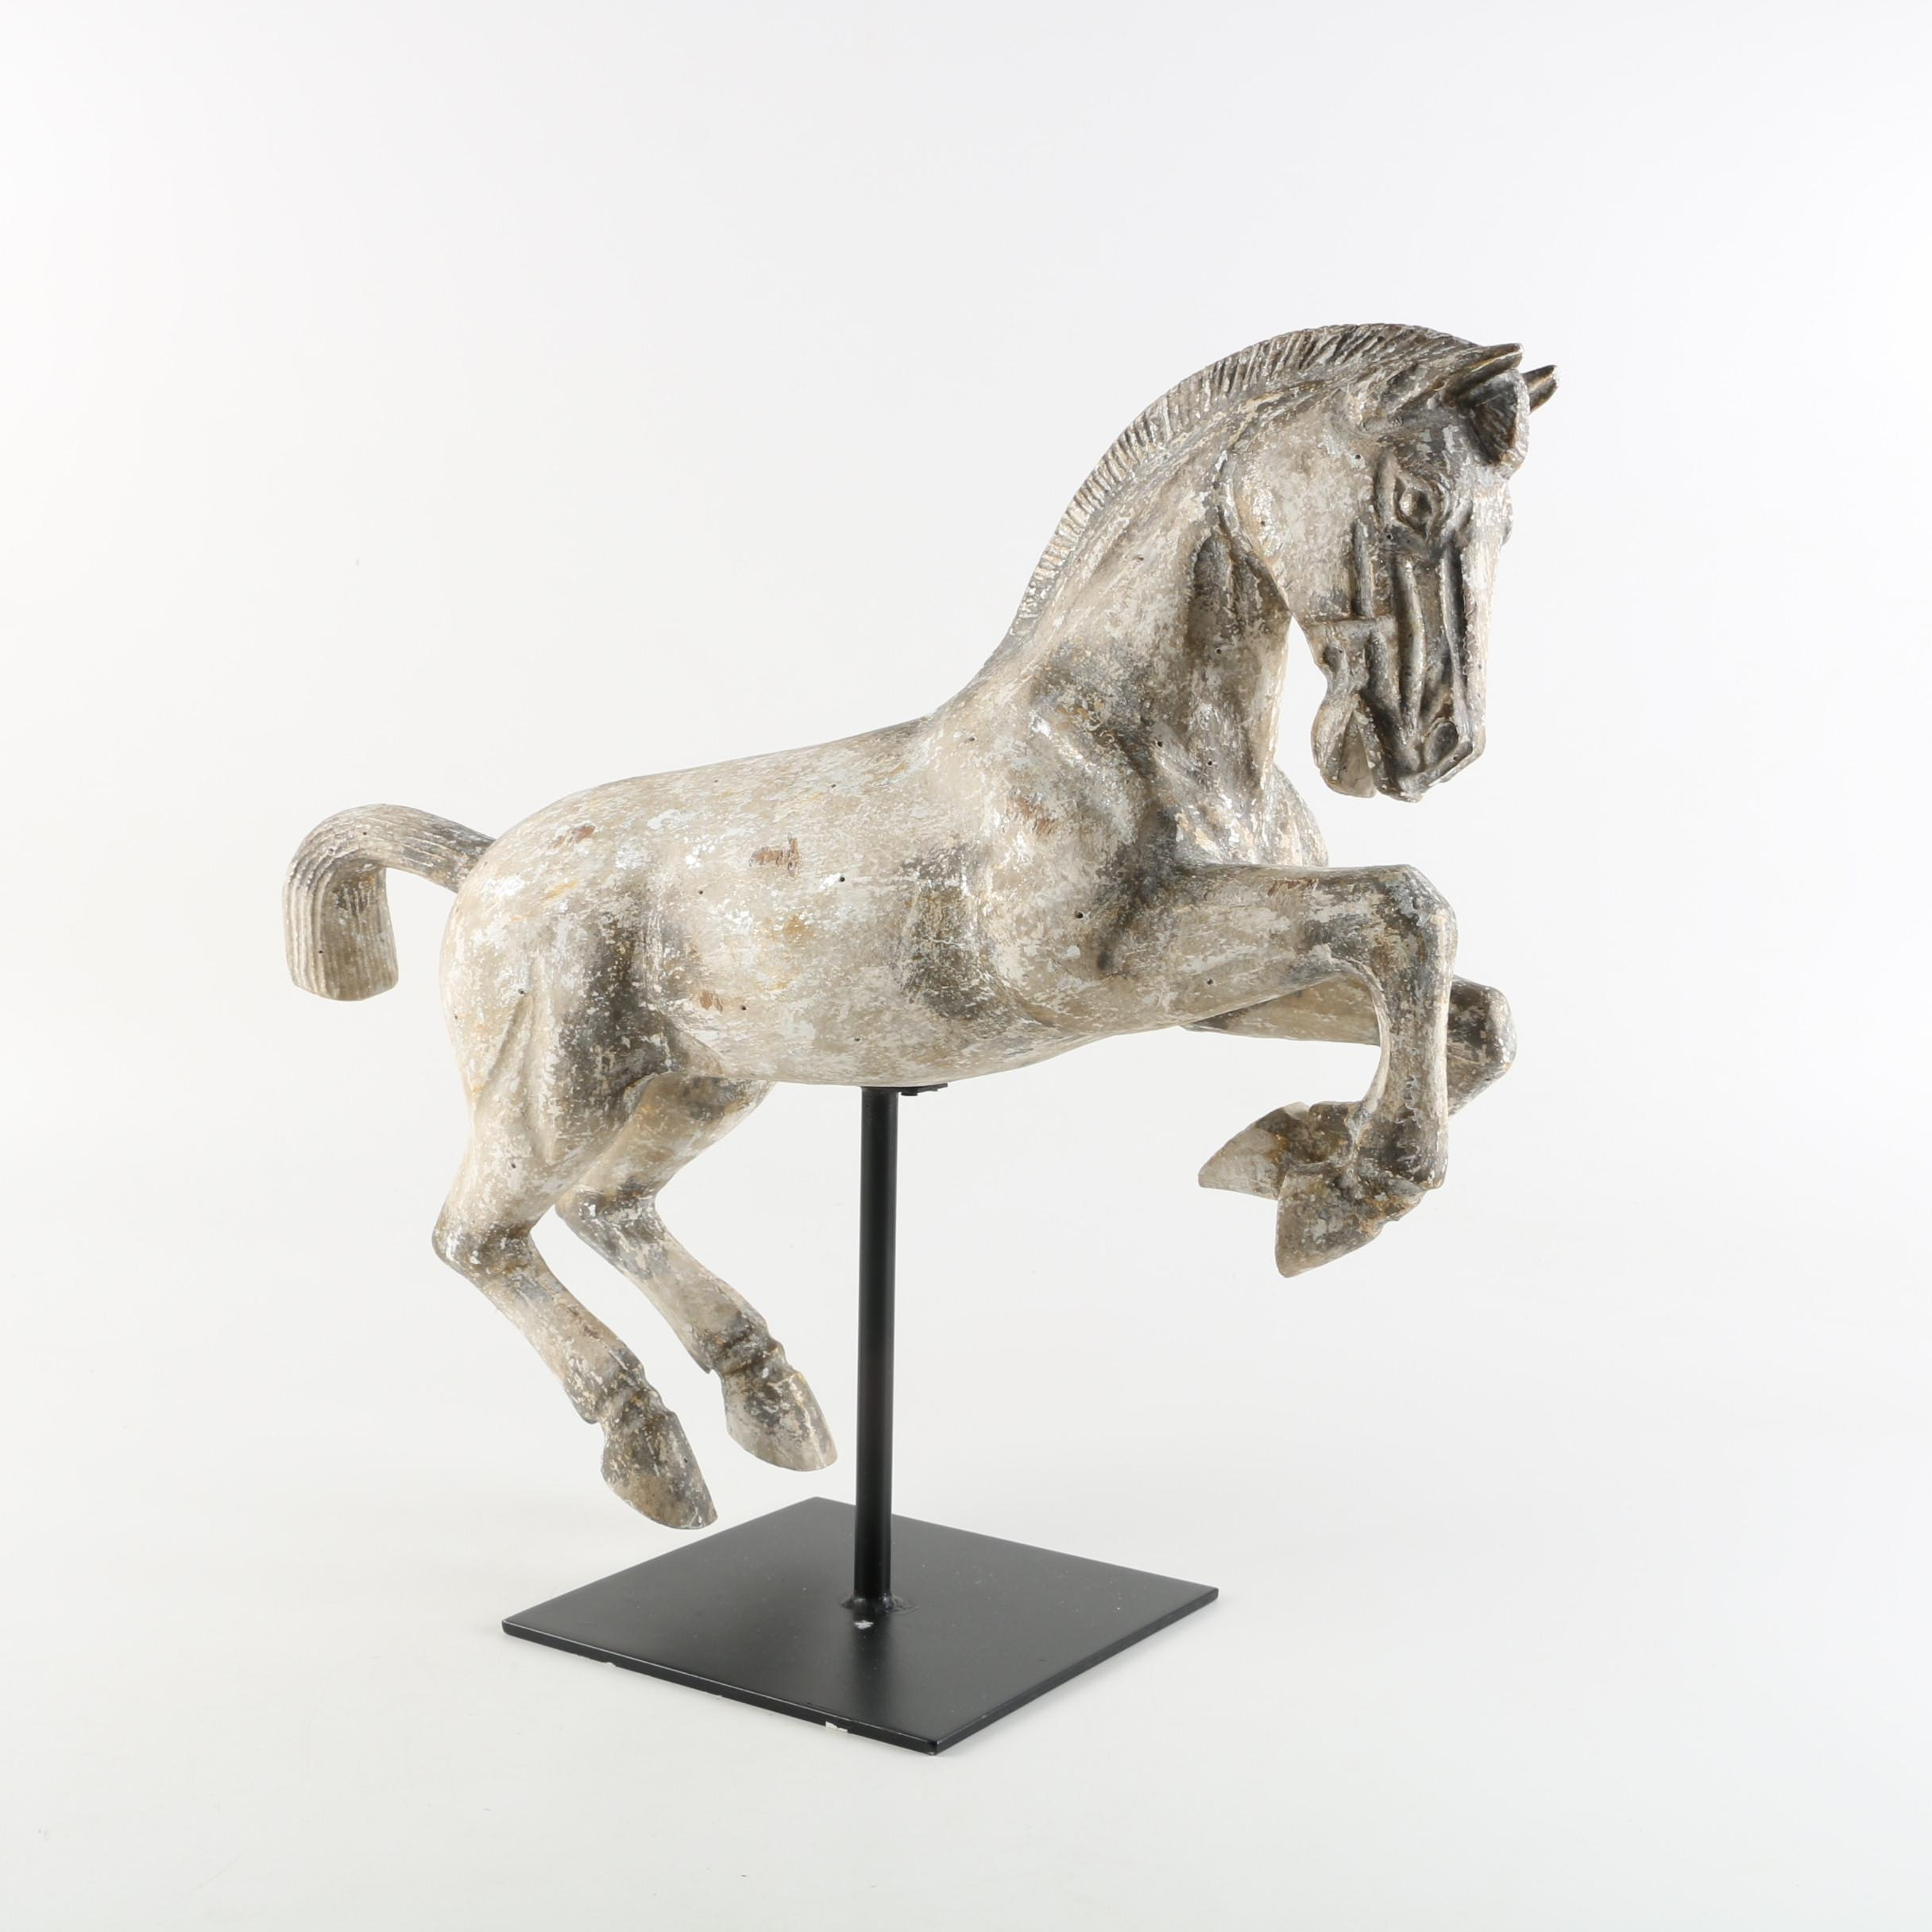 Contemporary Wooden Distressed Horse Statuette on Stand